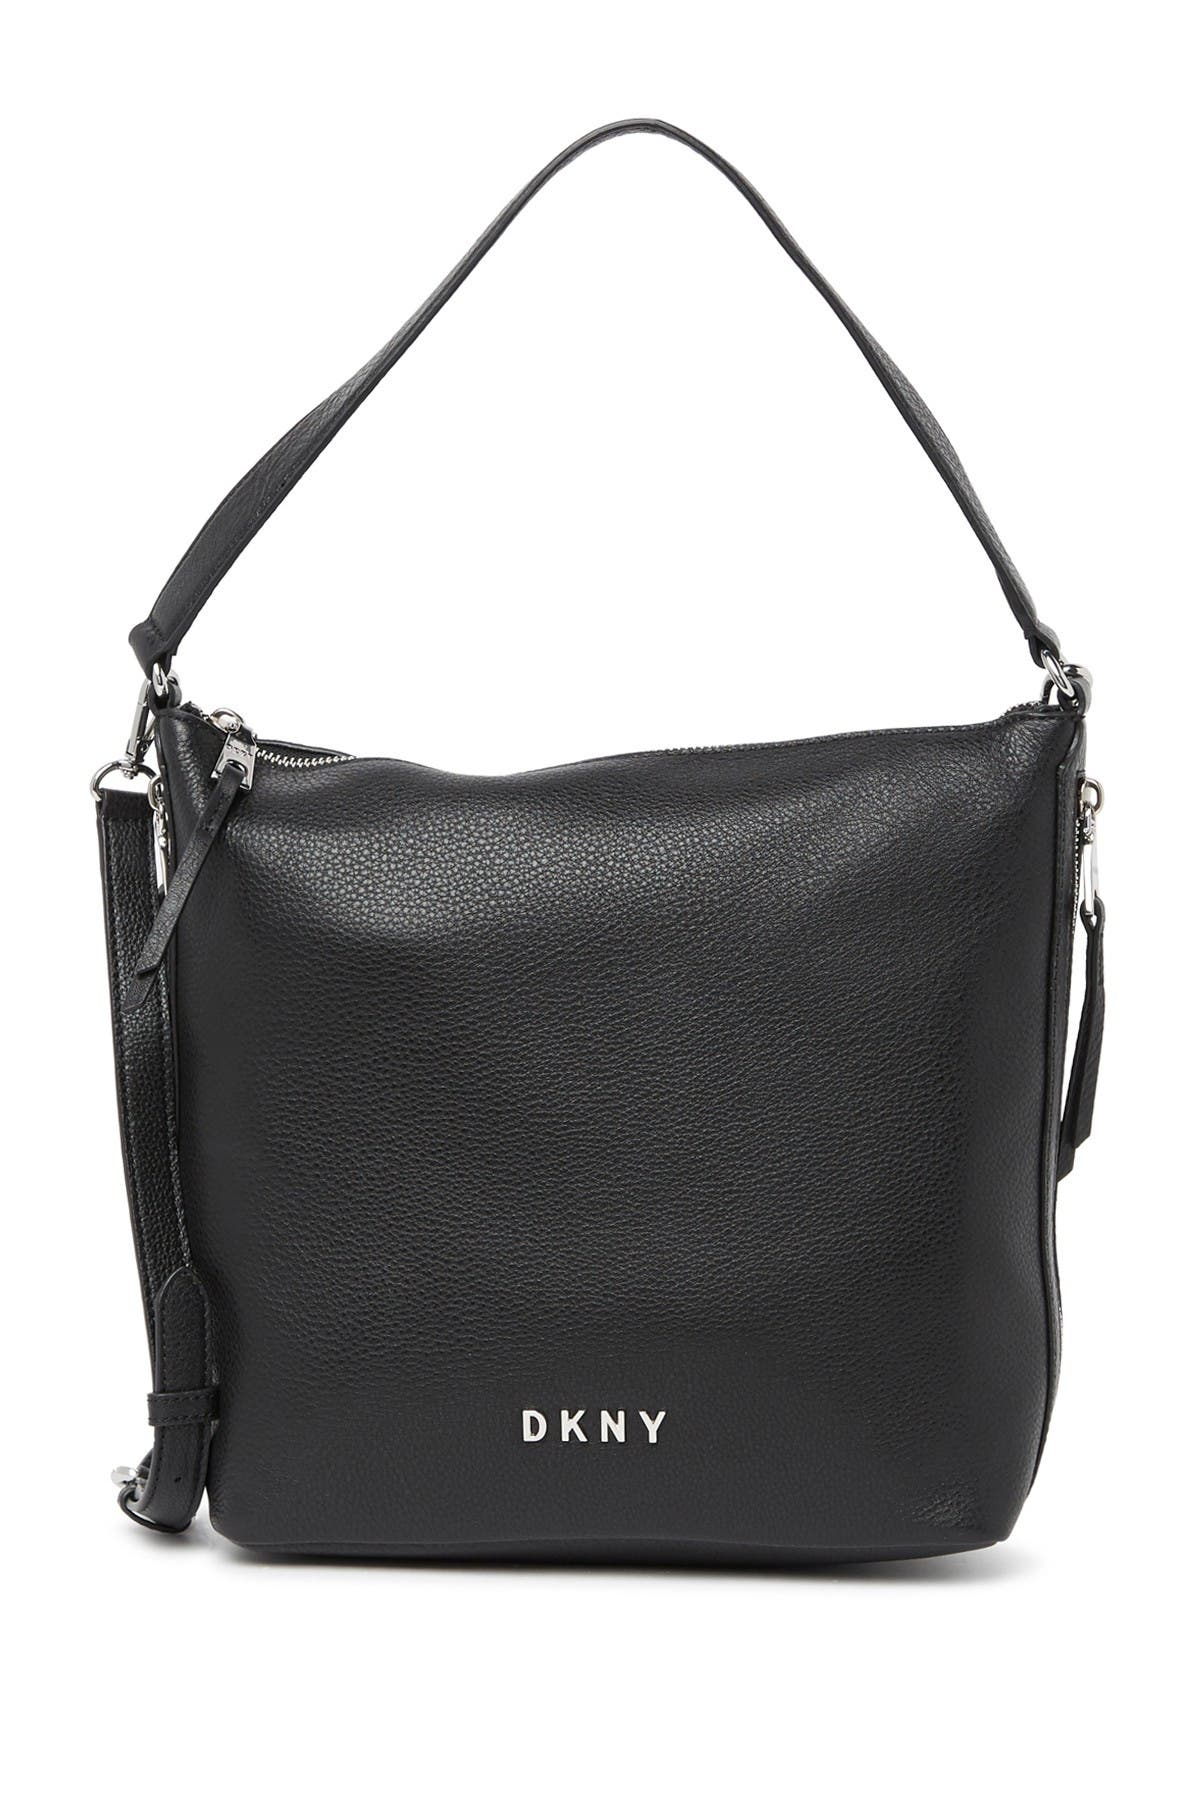 Image of DKNY Tappen Large Leather Hobo Bag